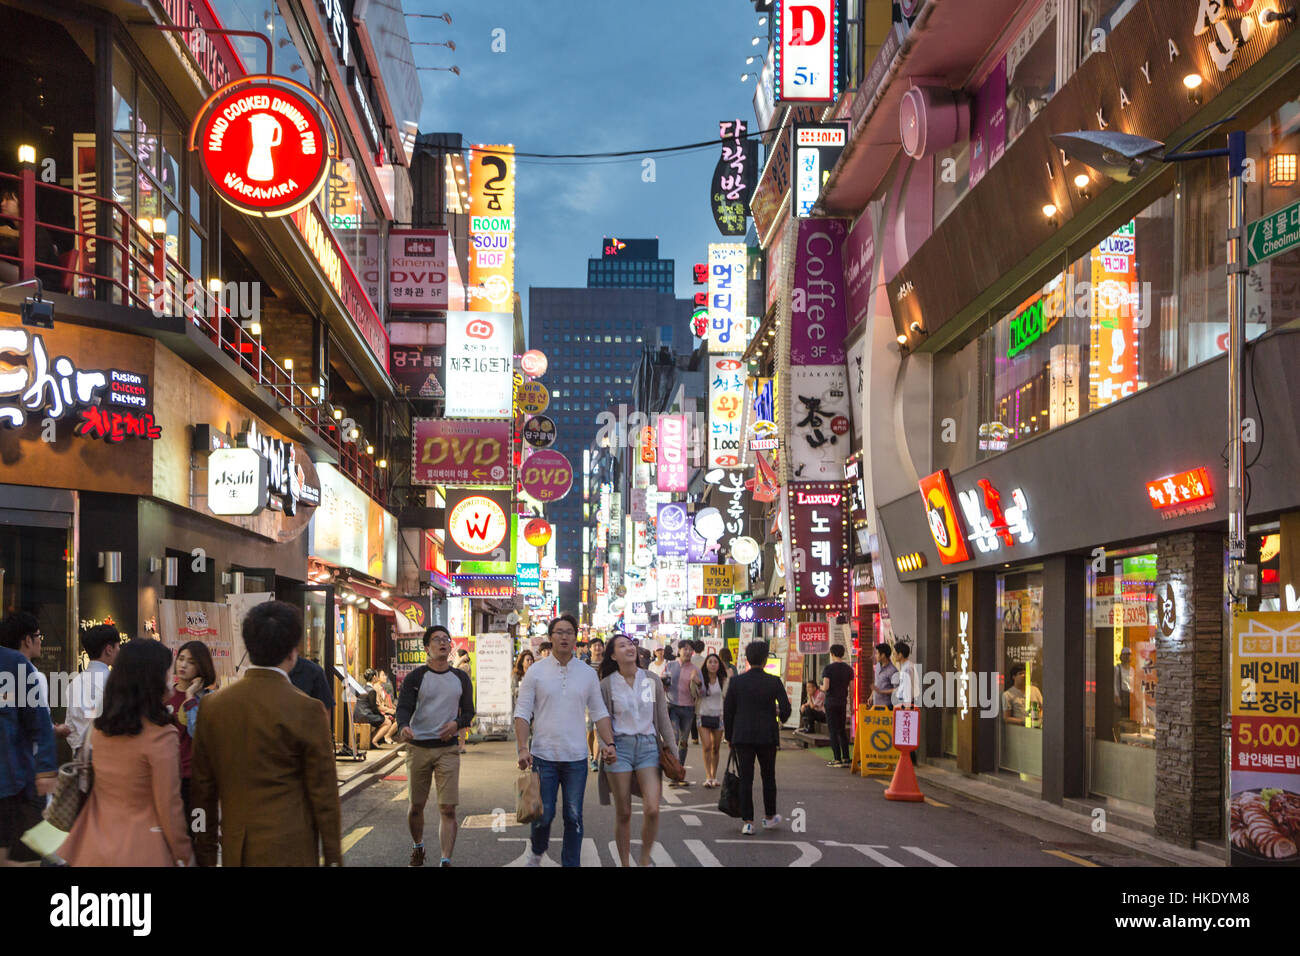 SEOUL, SOUTH KOREA - SEPTEMBER 12 2015: People wander in the walking streets of the Myeong-dong shopping district - Stock Image